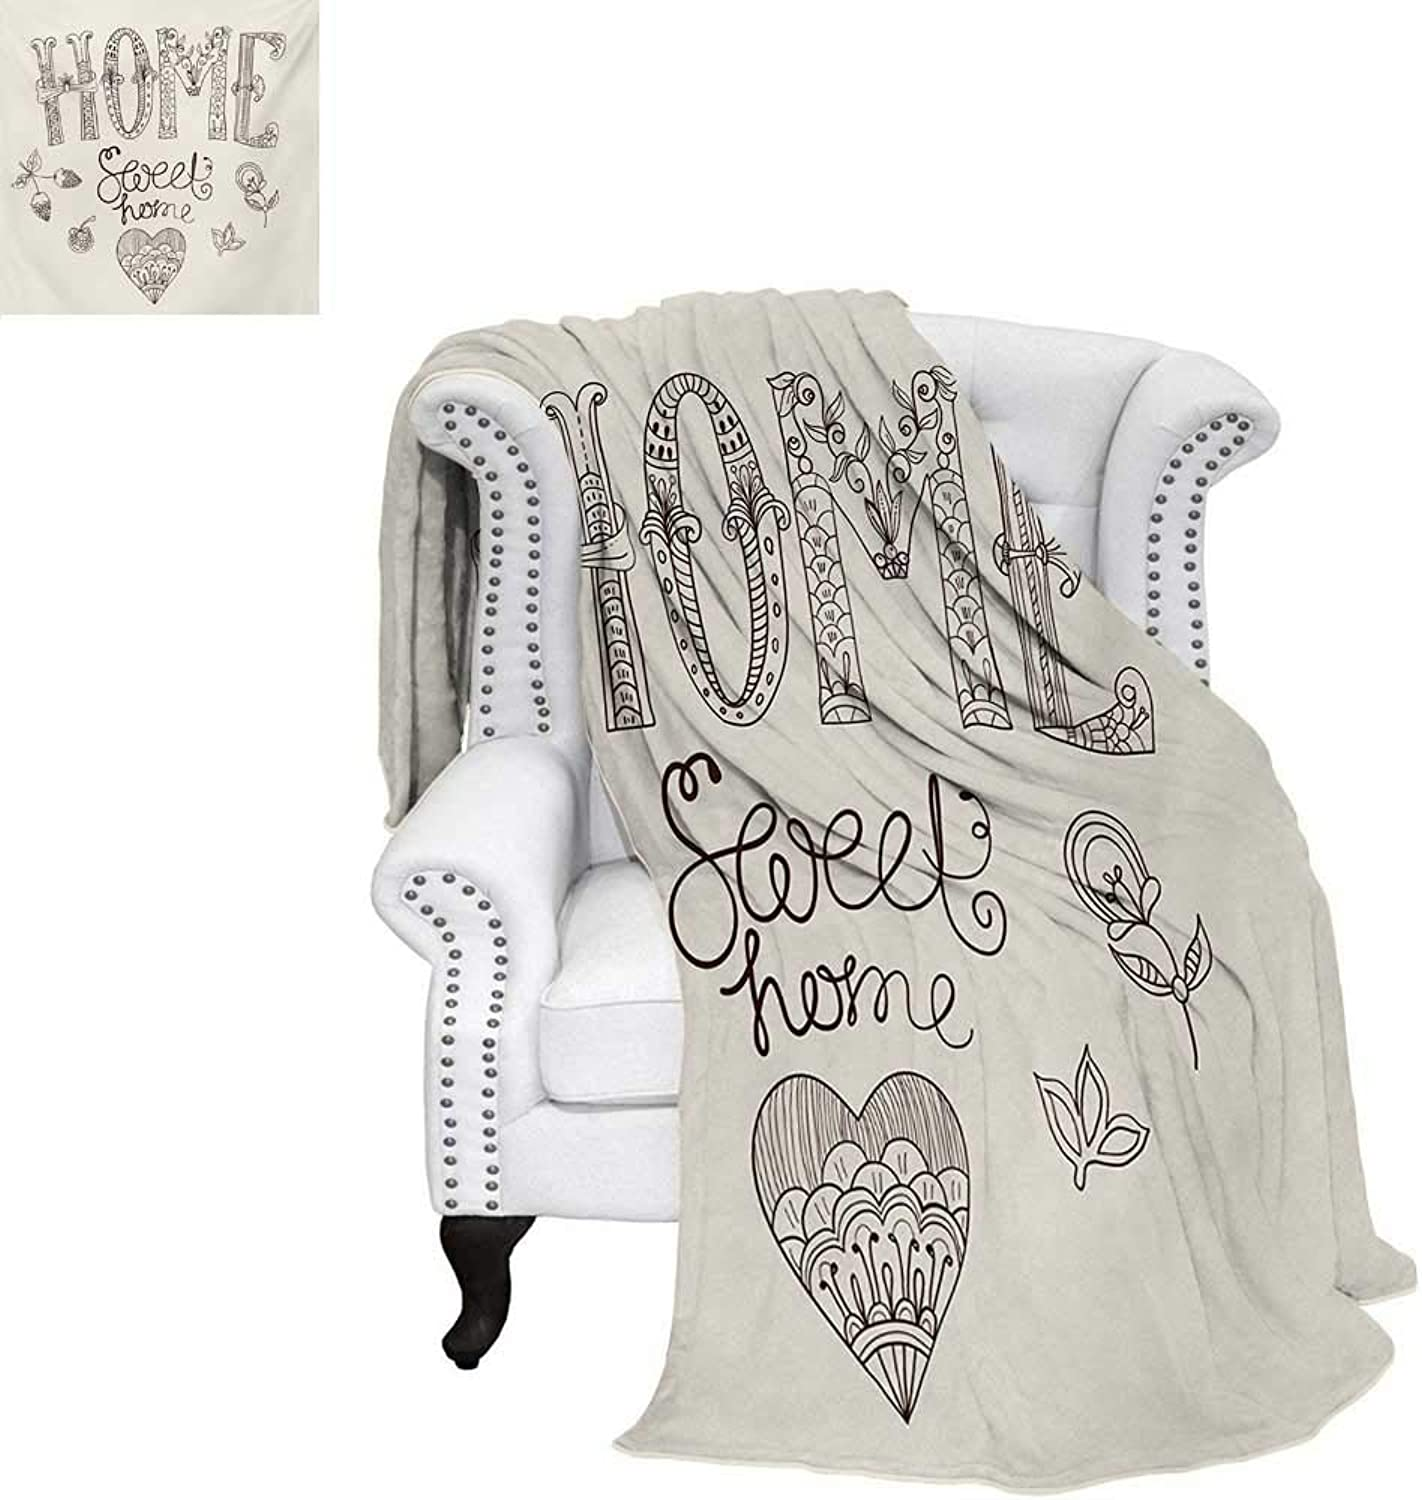 Warmfamily Home Sweet Home Summer Quilt Comforter Typography Illustration Floral Elements Artful Heart Figure Digital Printing Blanket 60 x50  Dark Brown Beige